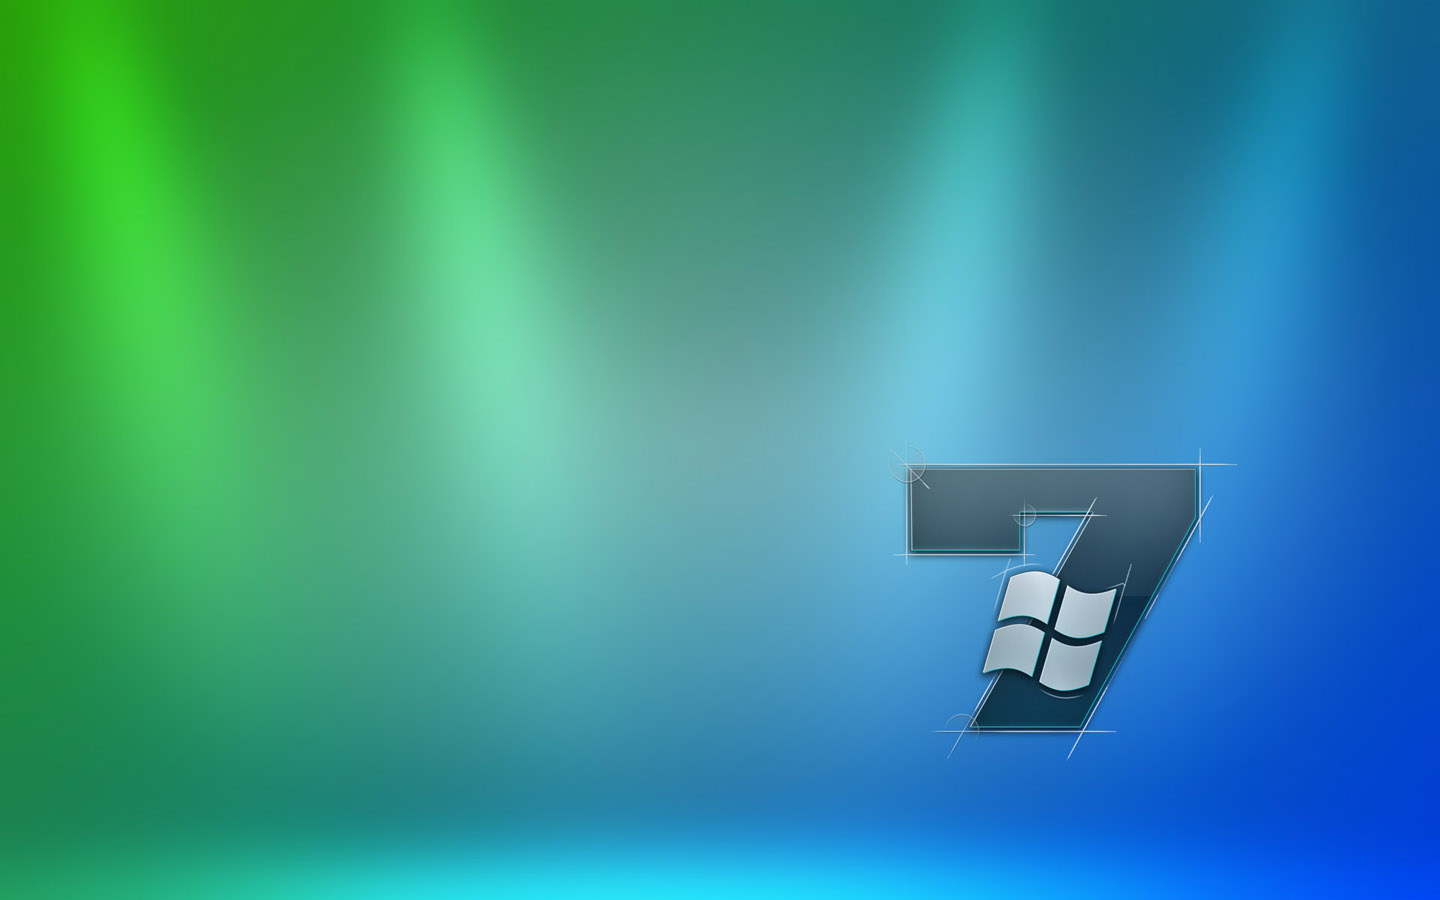 windows-7-wallpaper-hd (12)